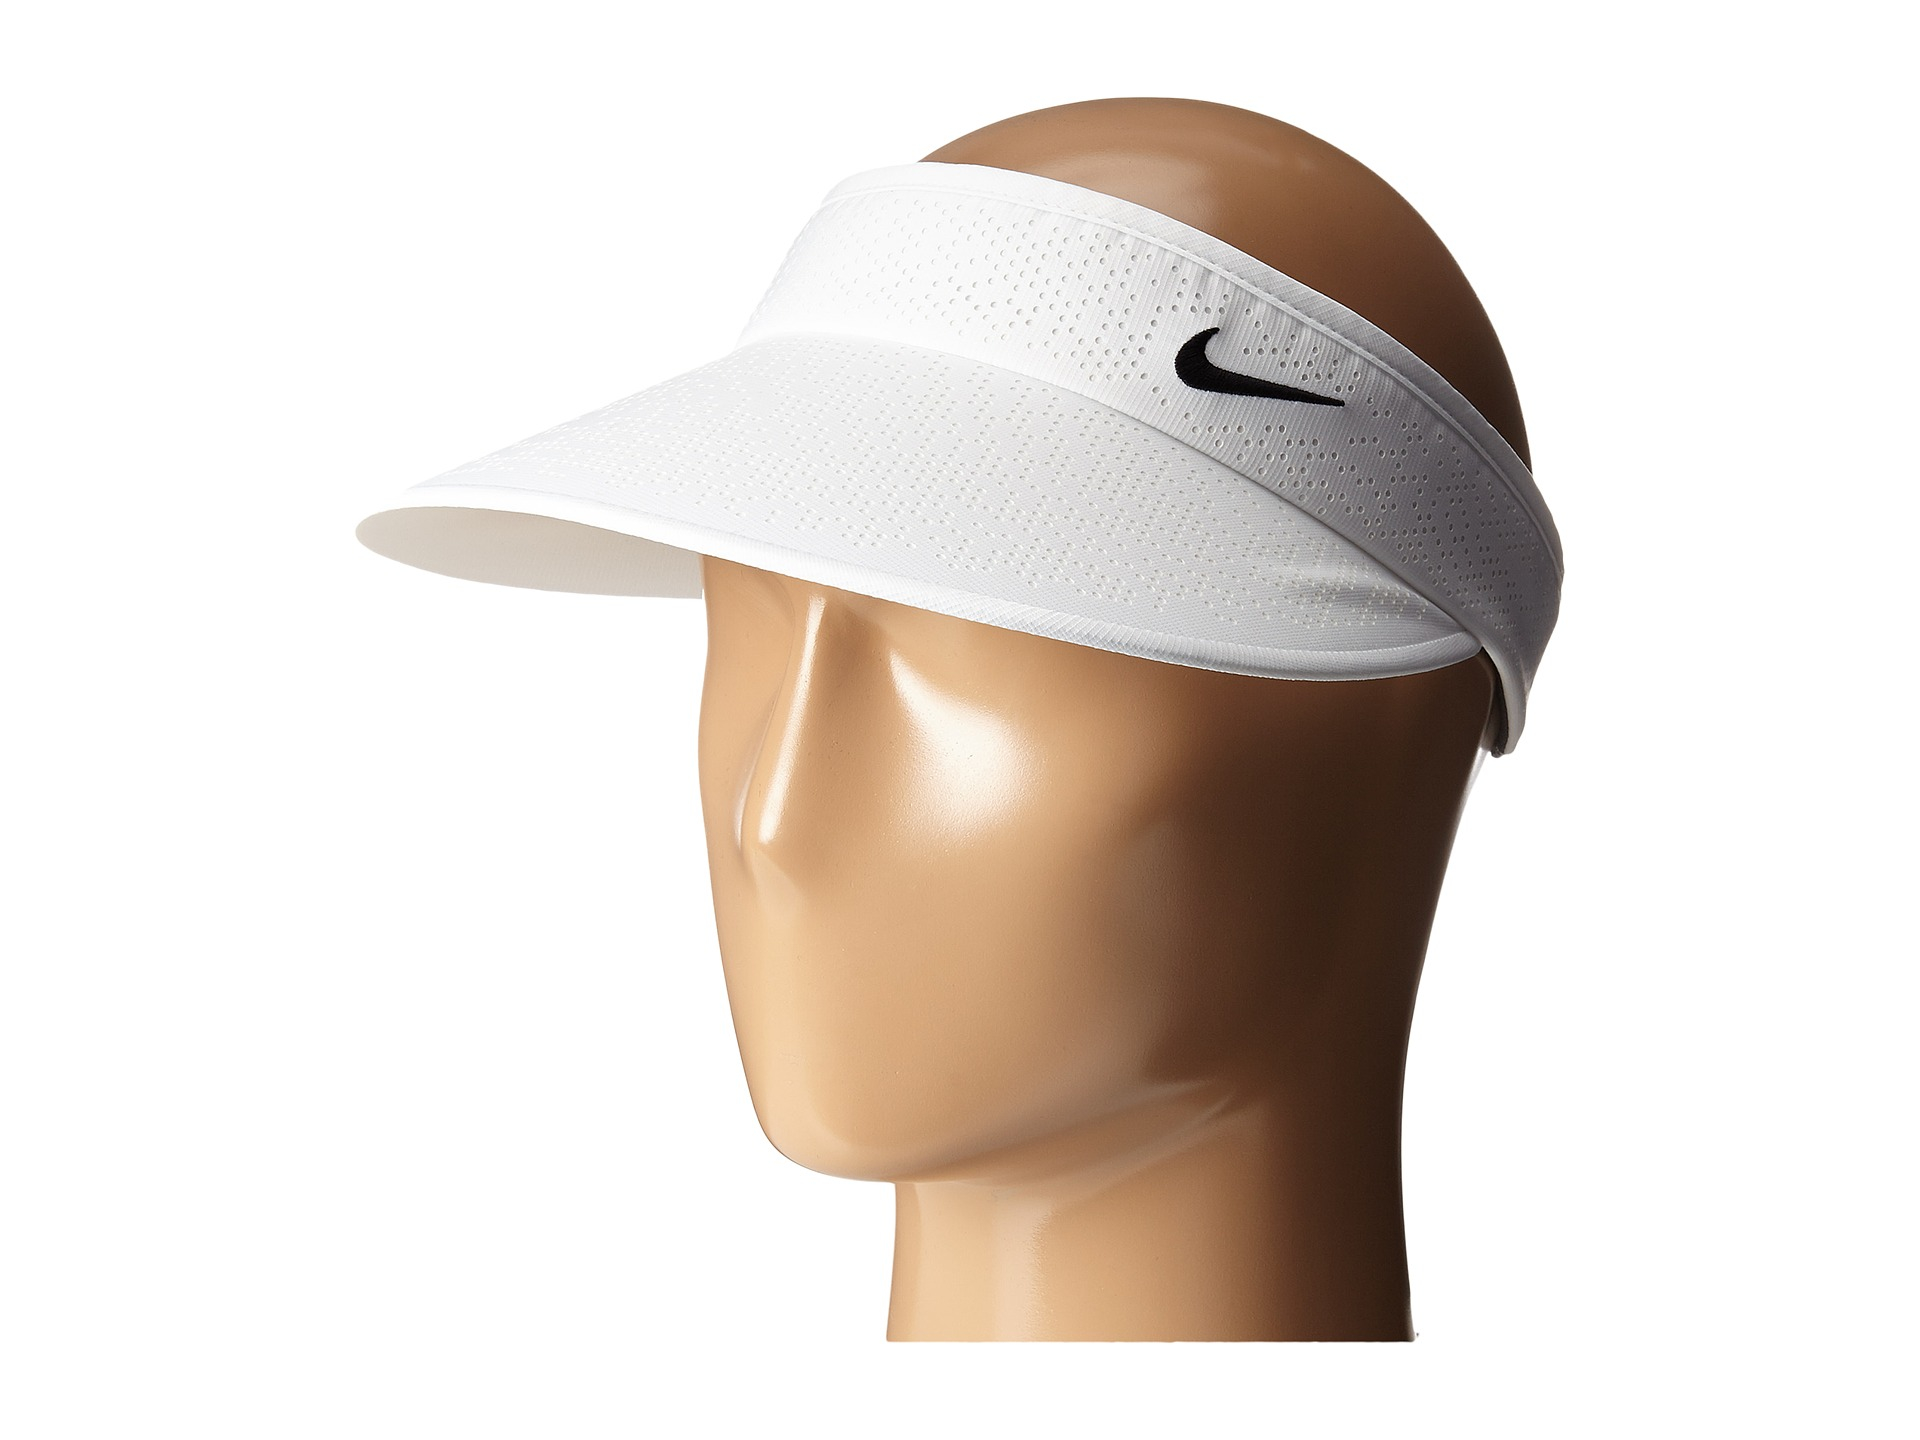 910f9108bea890 Nike Big Bill Visor 2.0 in White - Lyst